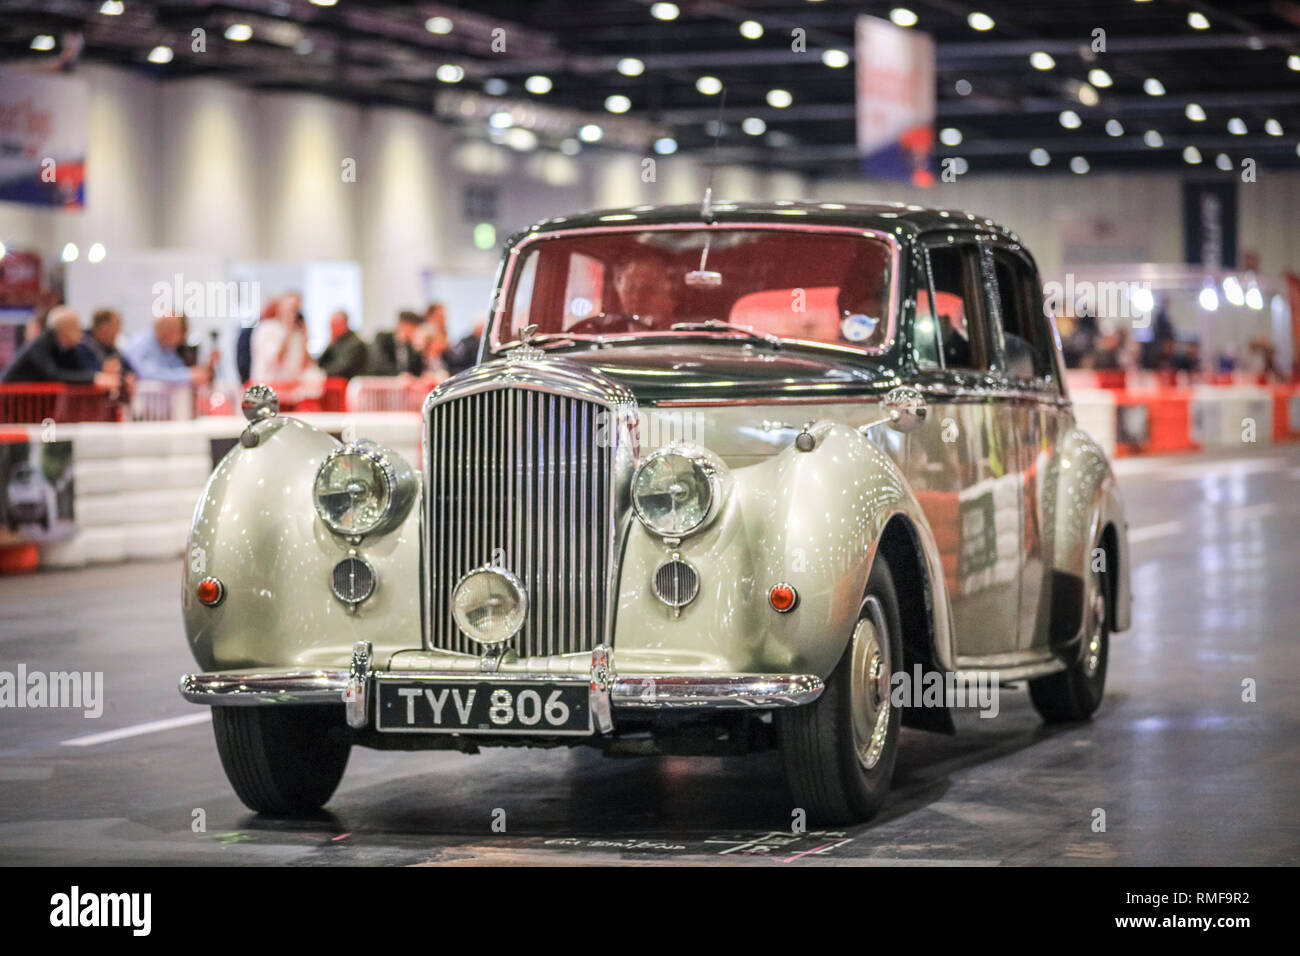 excel, london, uk, 14th feb 2019. a vintage bentley races down the